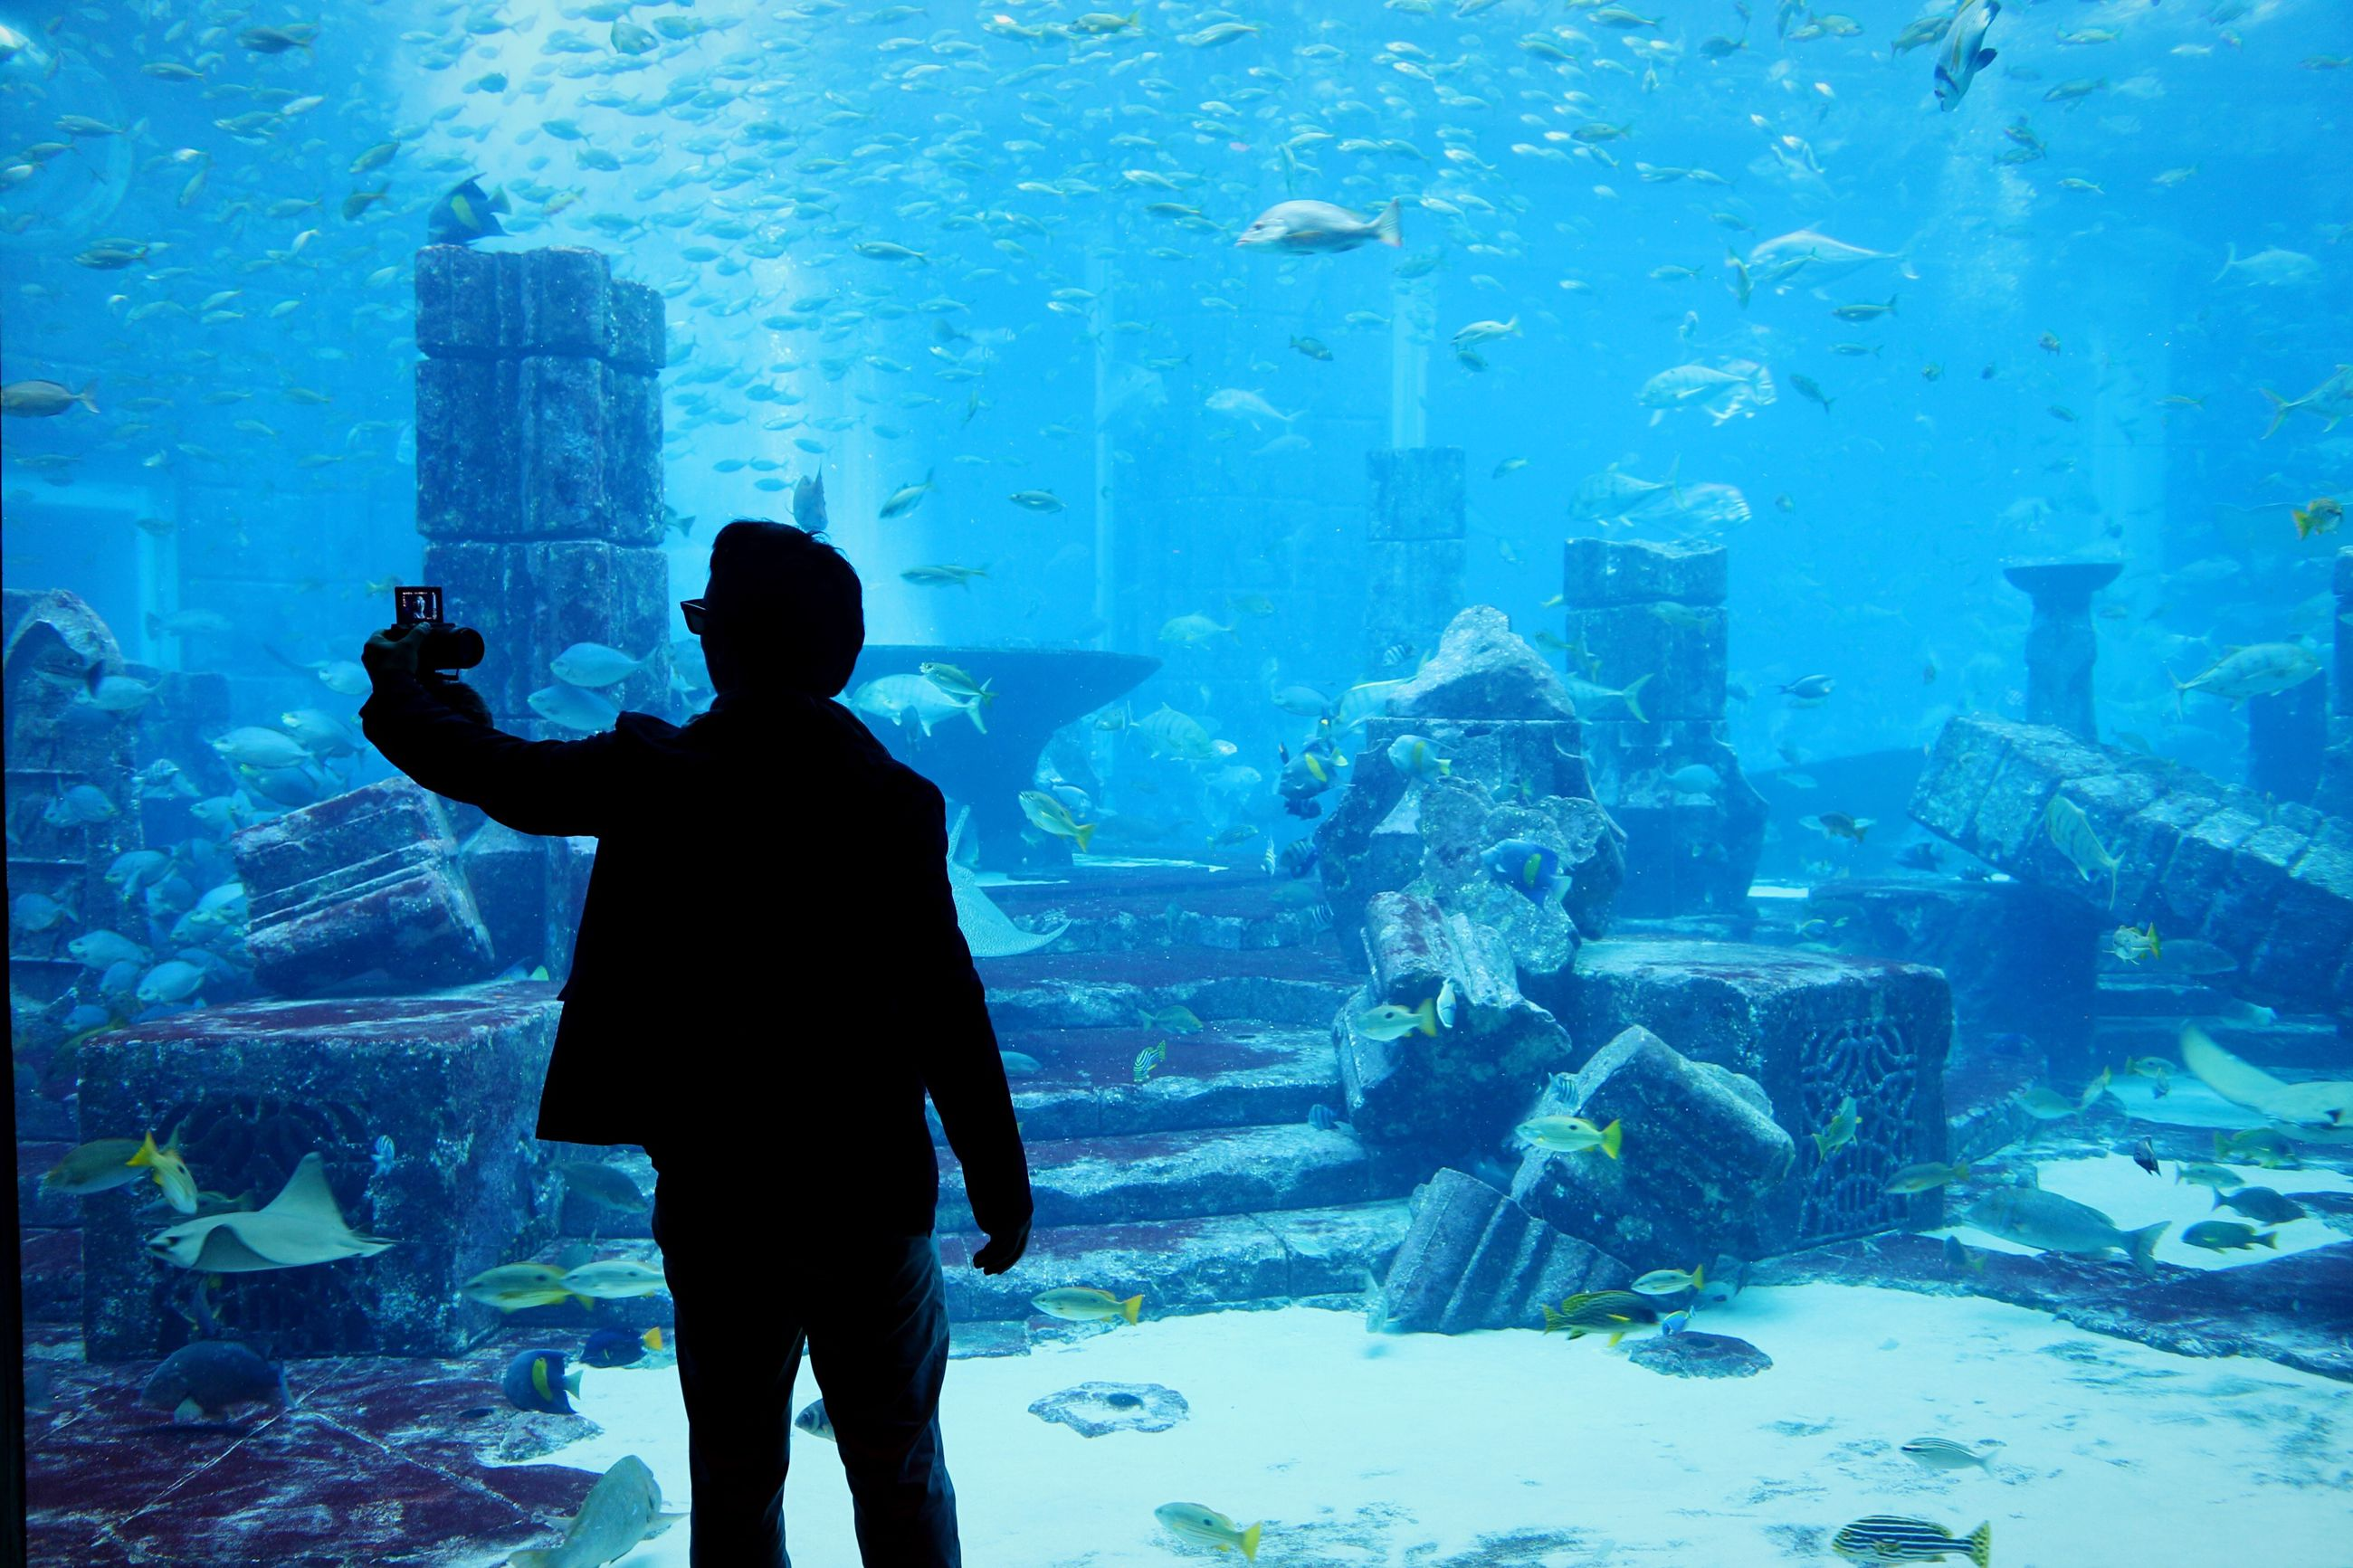 blue, silhouette, water, one person, aquarium, underwater diving, people, men, sea, only men, sea life, adult, undersea, day, one man only, adults only, outdoors, scuba diving